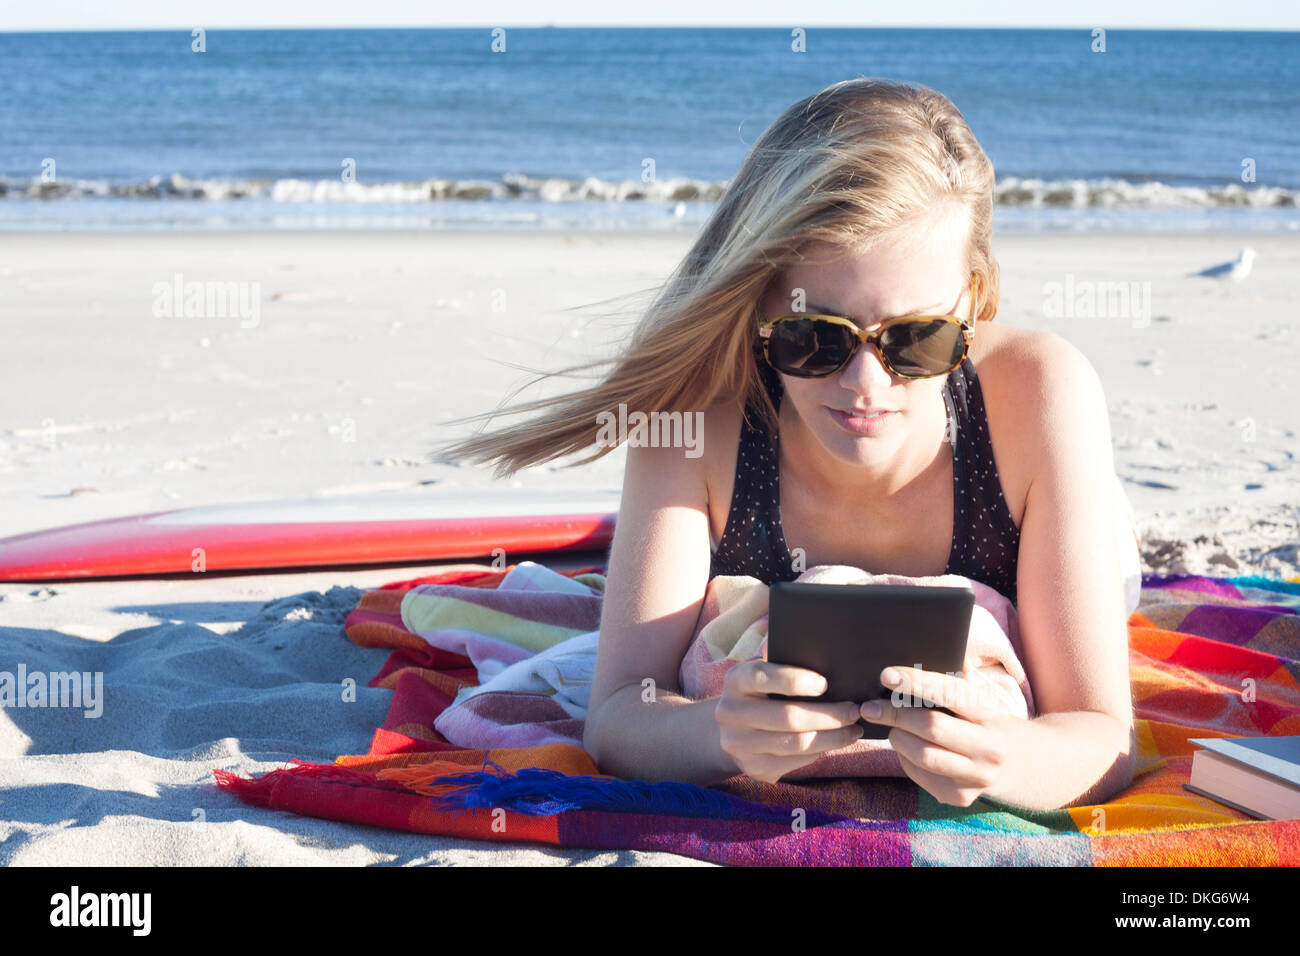 Young woman looking at digital tablet on beach, Breezy Point, Queens, New York, USA - Stock Image